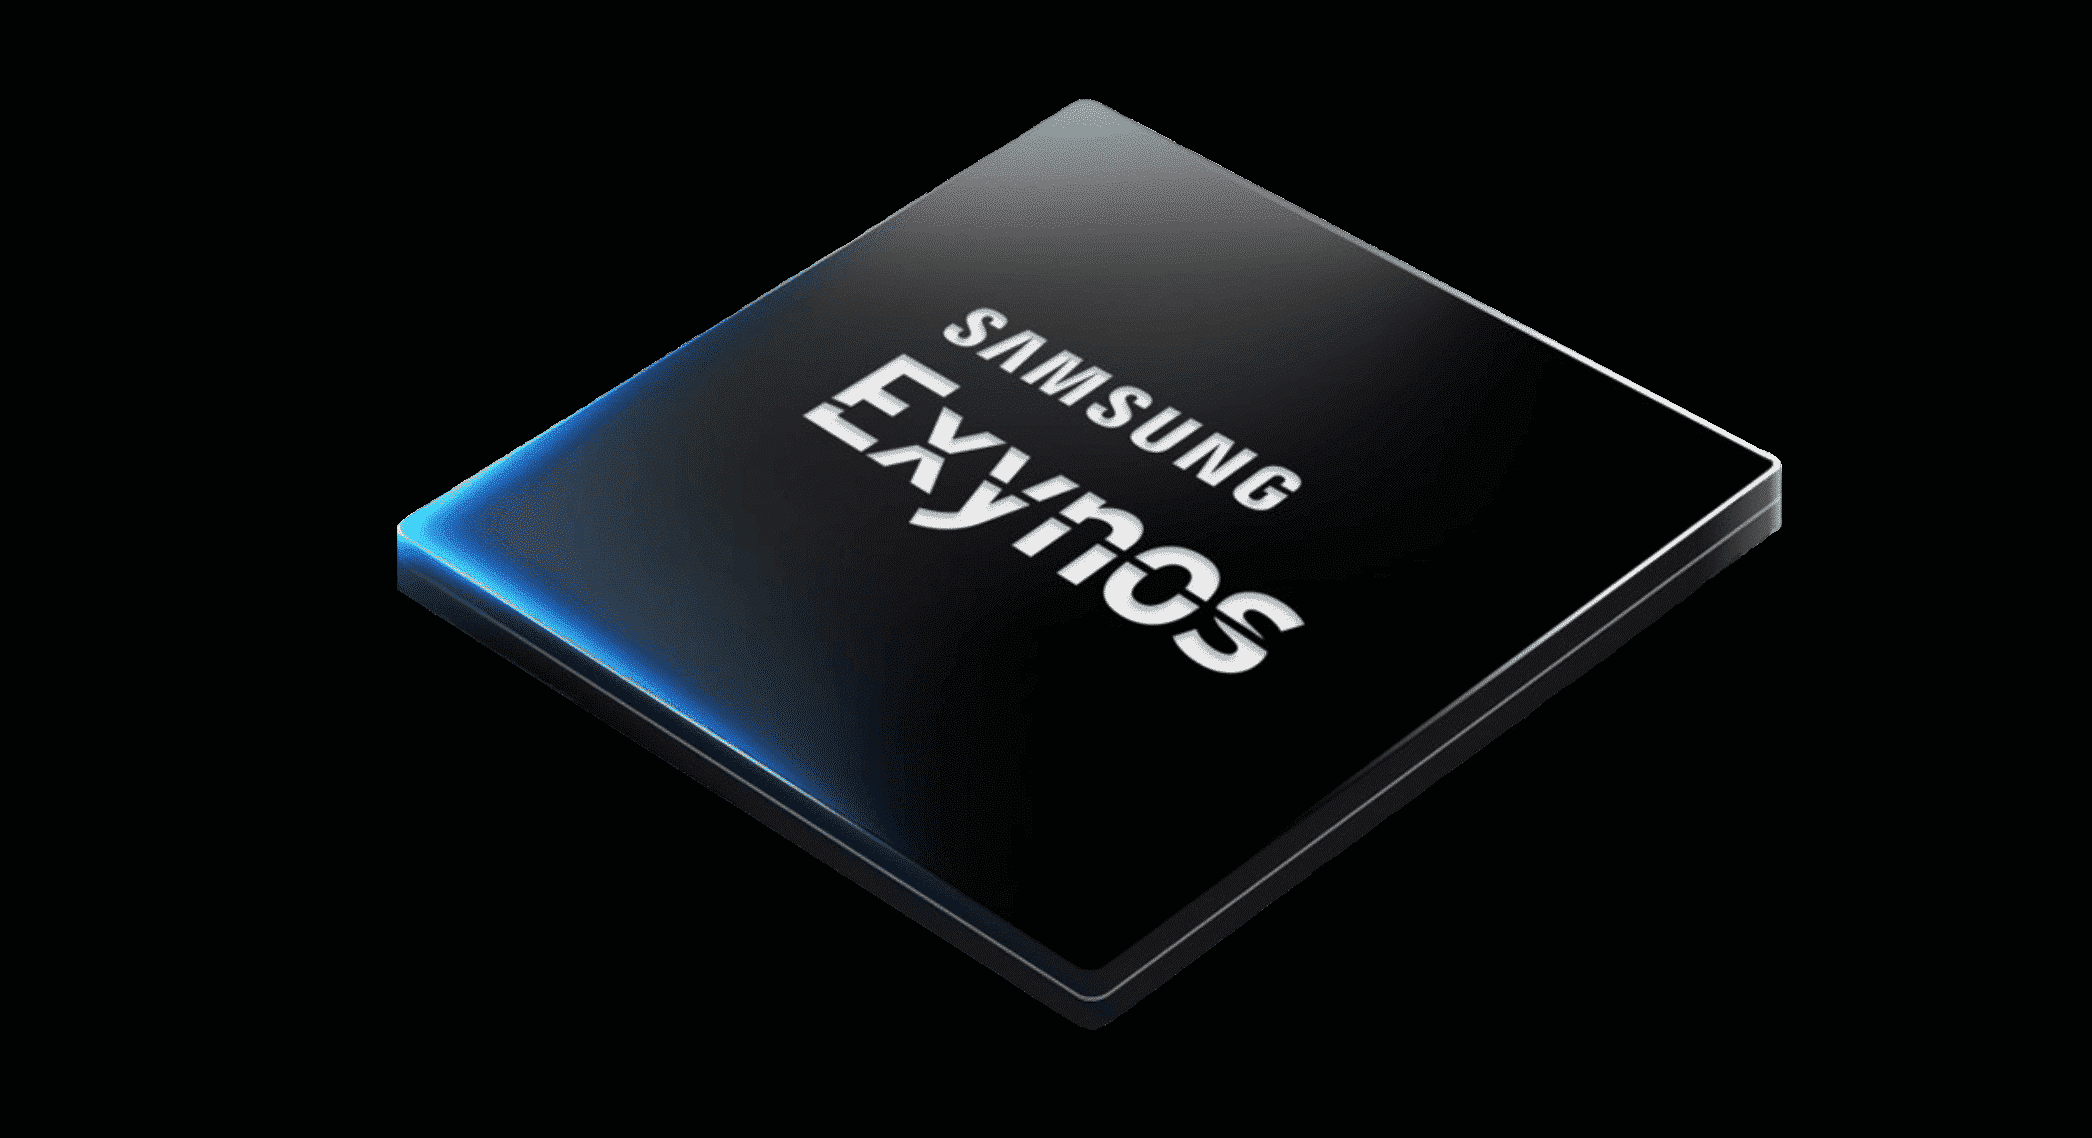 The Samsung Exynos 1080 chipset will be unveiled on November 12th